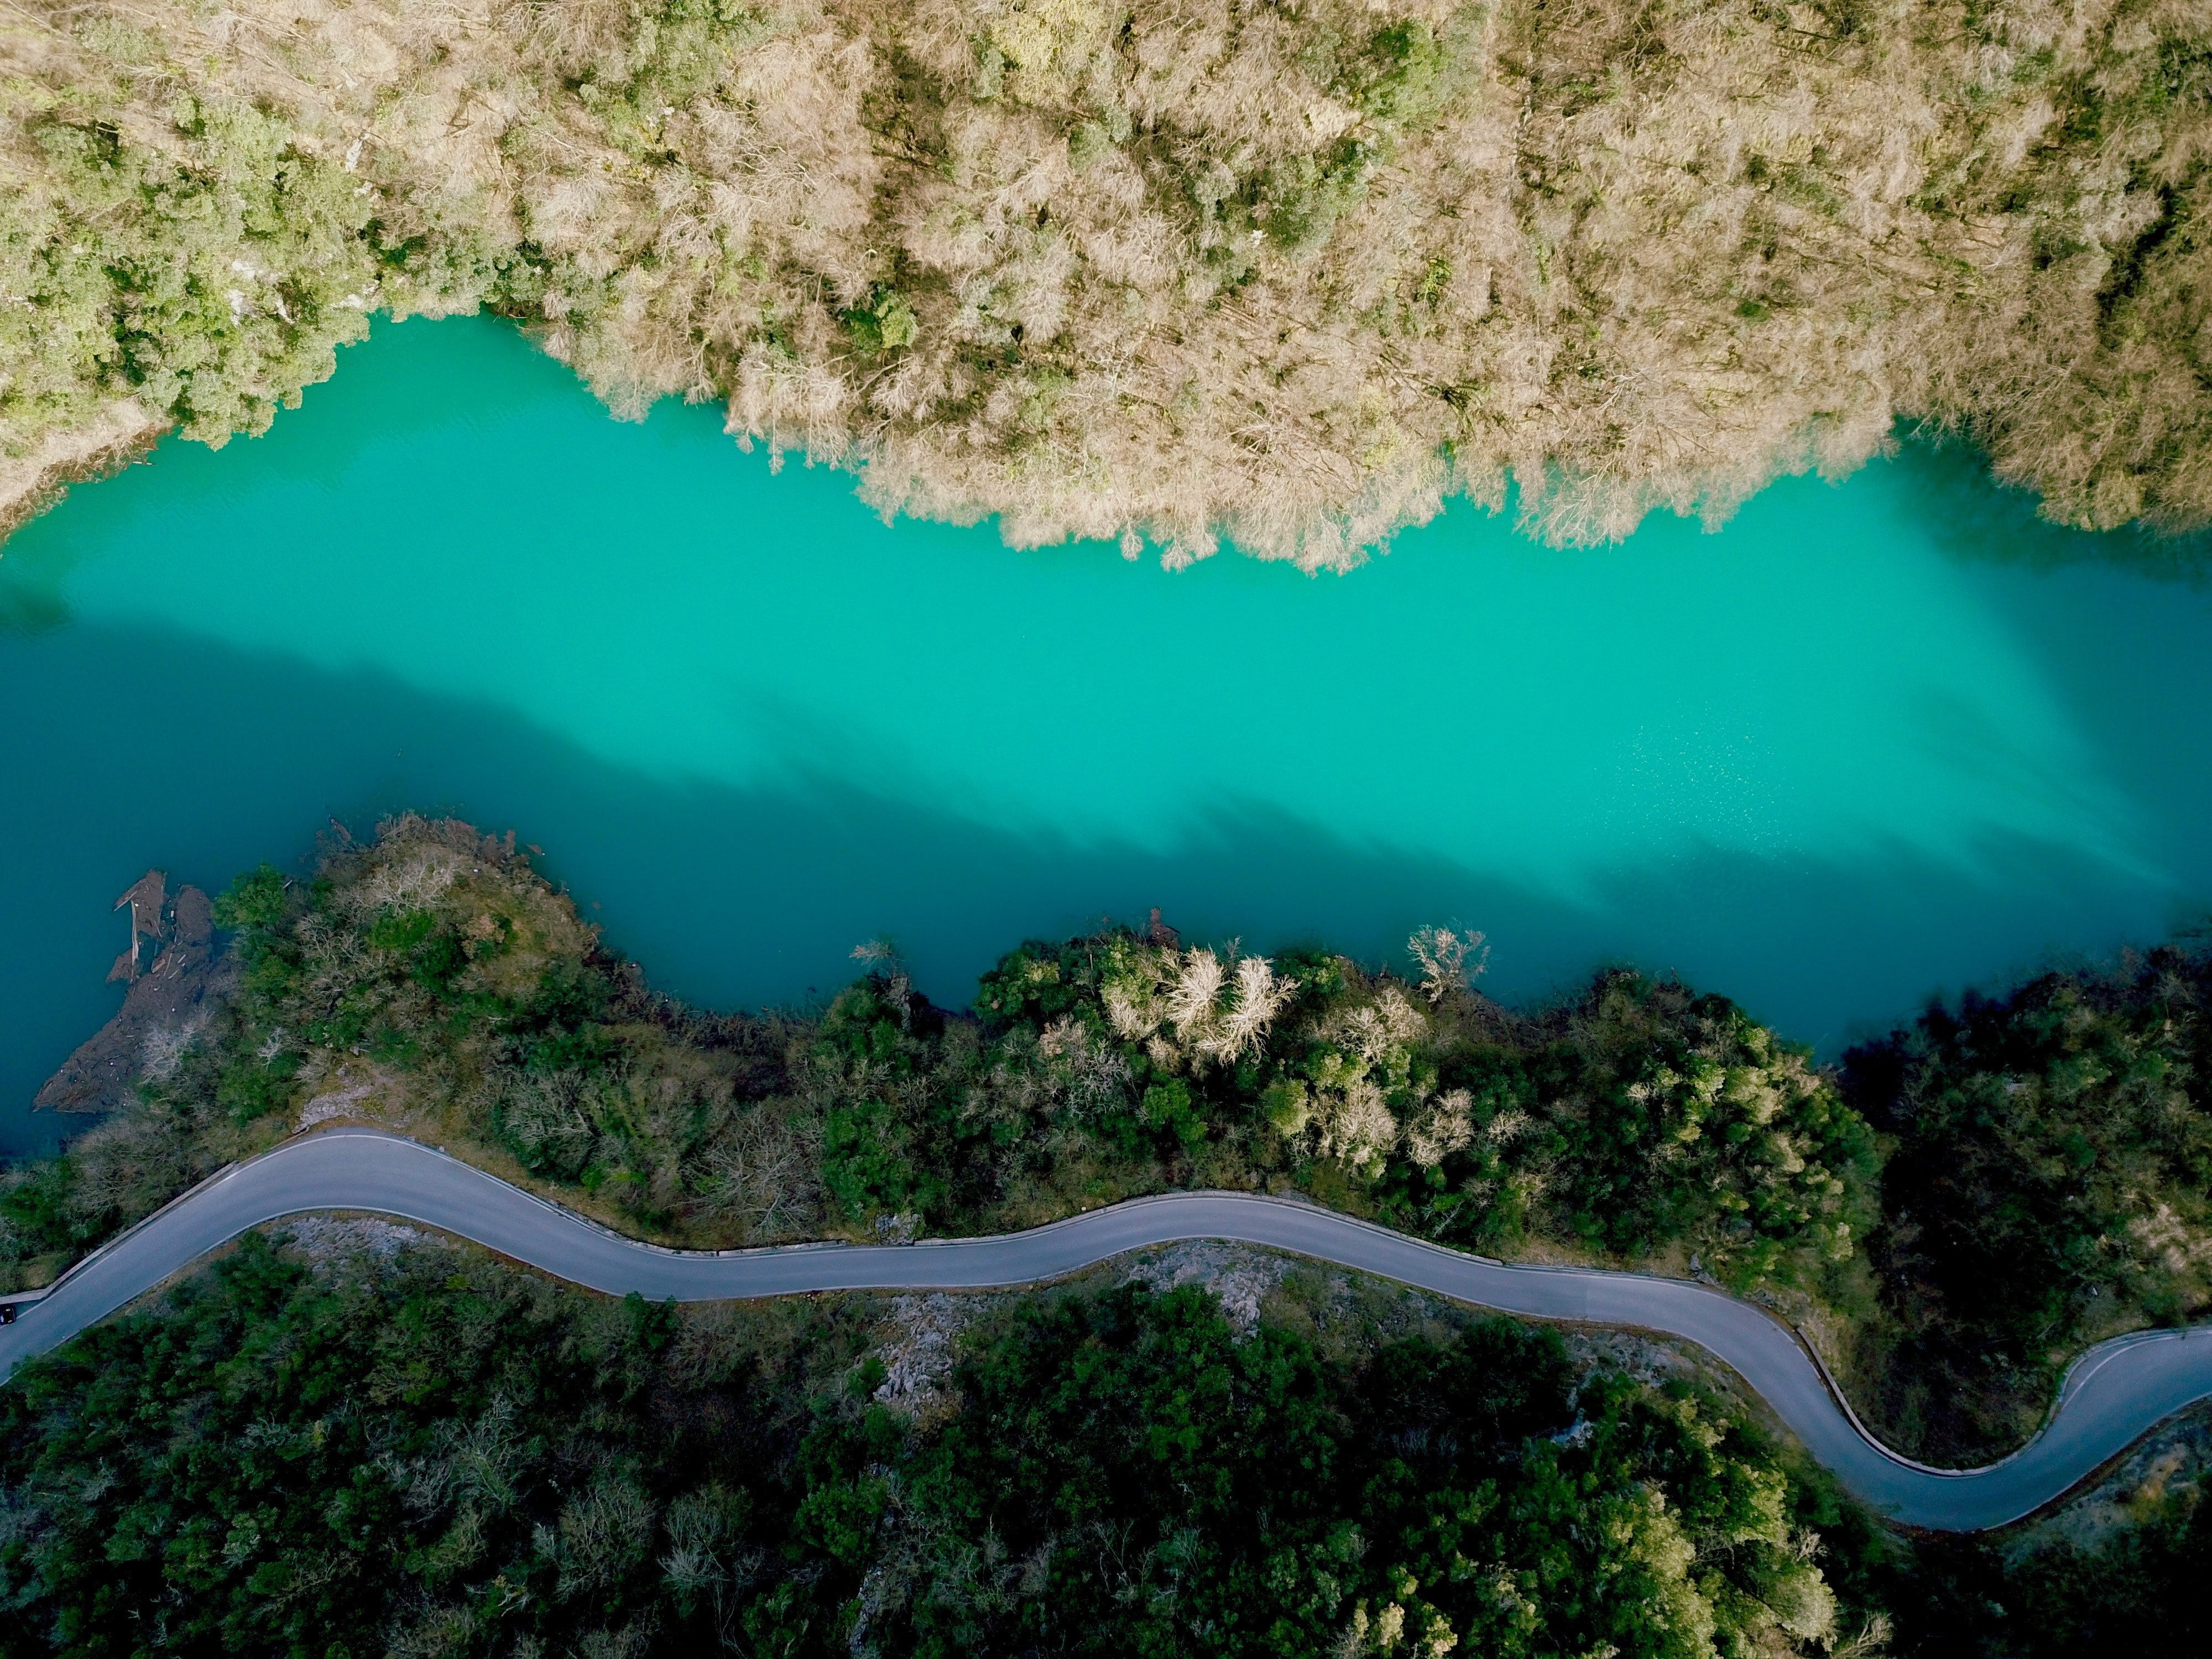 aerial view photography of lake between green trees